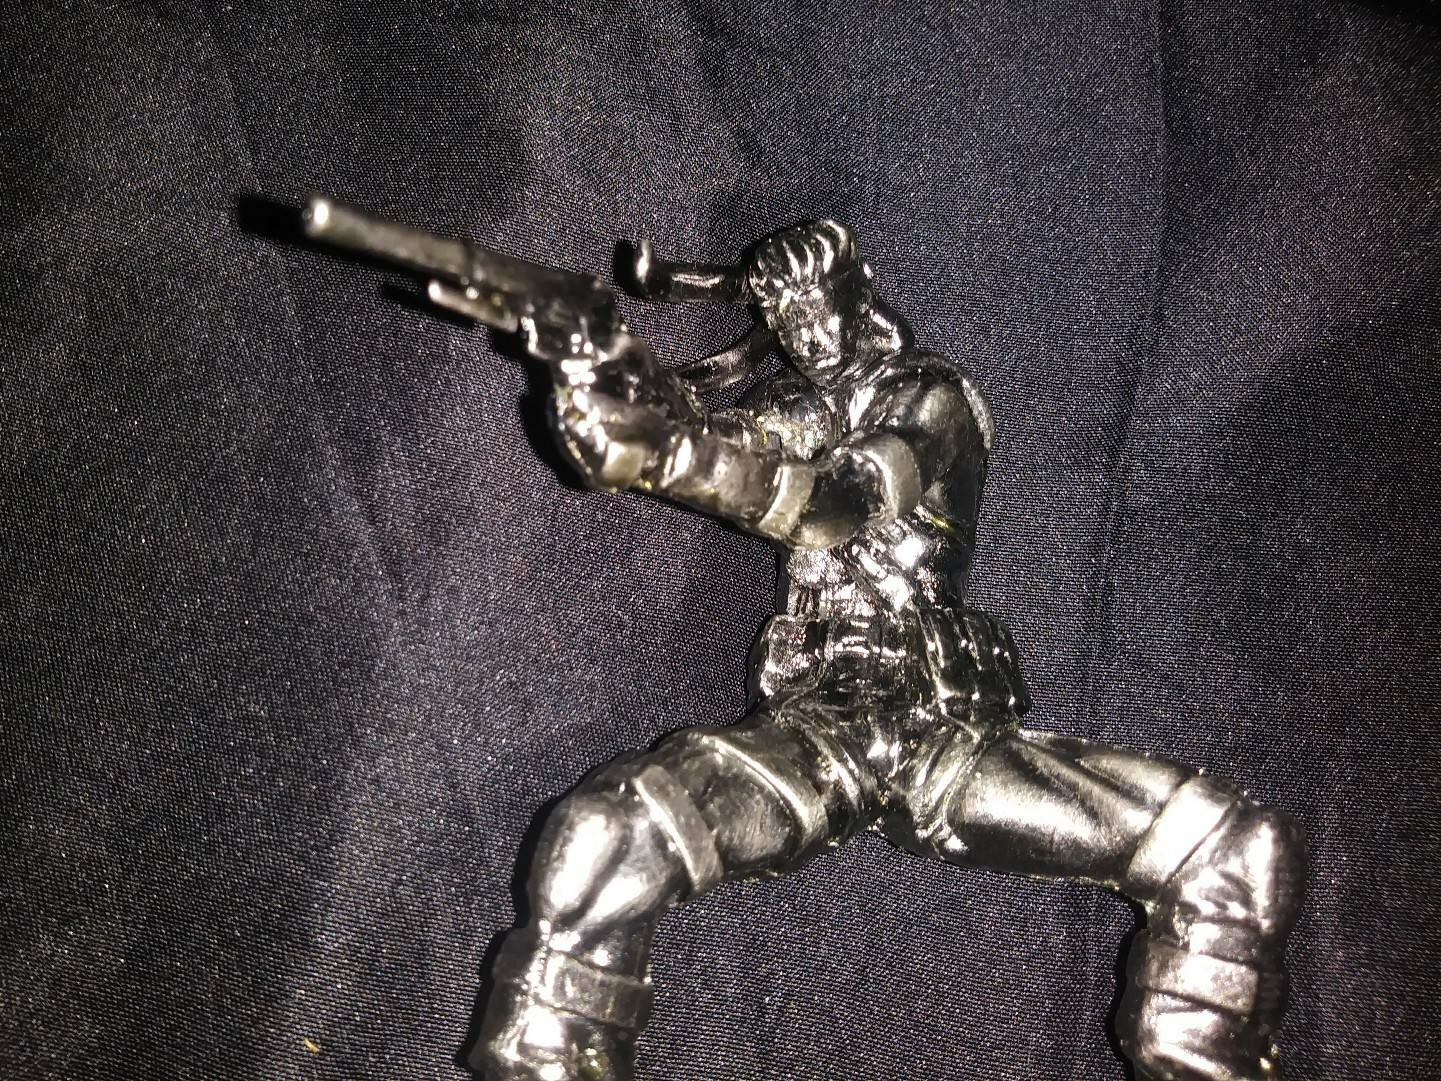 METAL GEAR SOLID 2 SONS OF LIBERTY SOLID SNAKE SNAKE SNAKE FIGURE STATUE YAMATO 6814b5